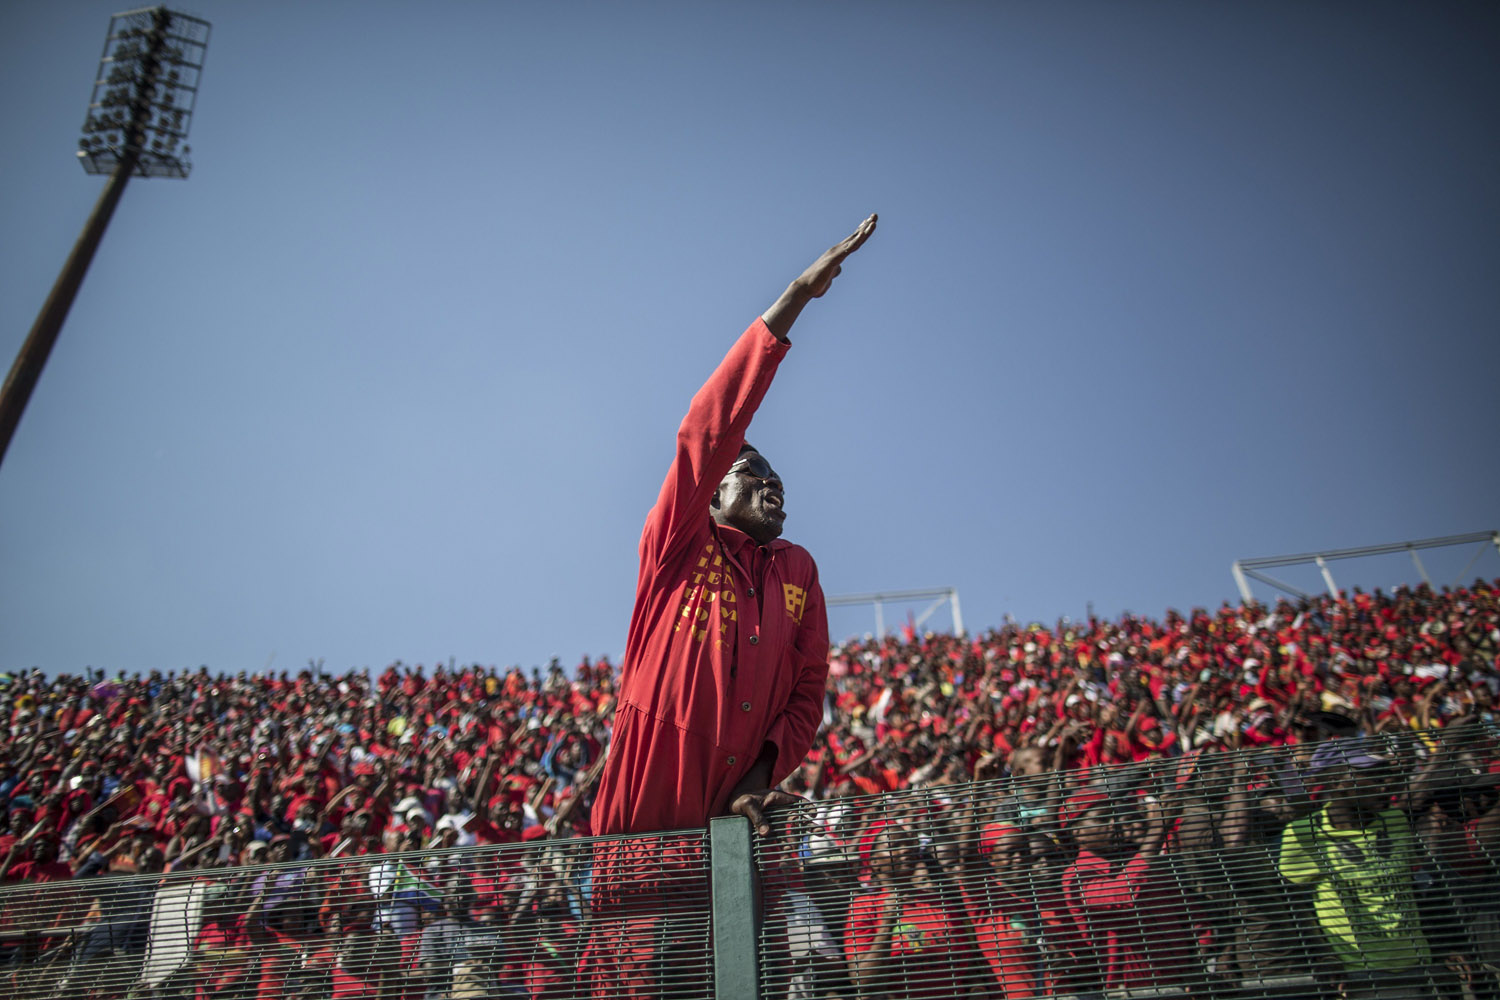 May 4, 2014. A supporter of South Africa's Economic Freedom Fighters (EFF) reacts during the final EFF electoral campaign rally in Atteridgeville (Pretoria).